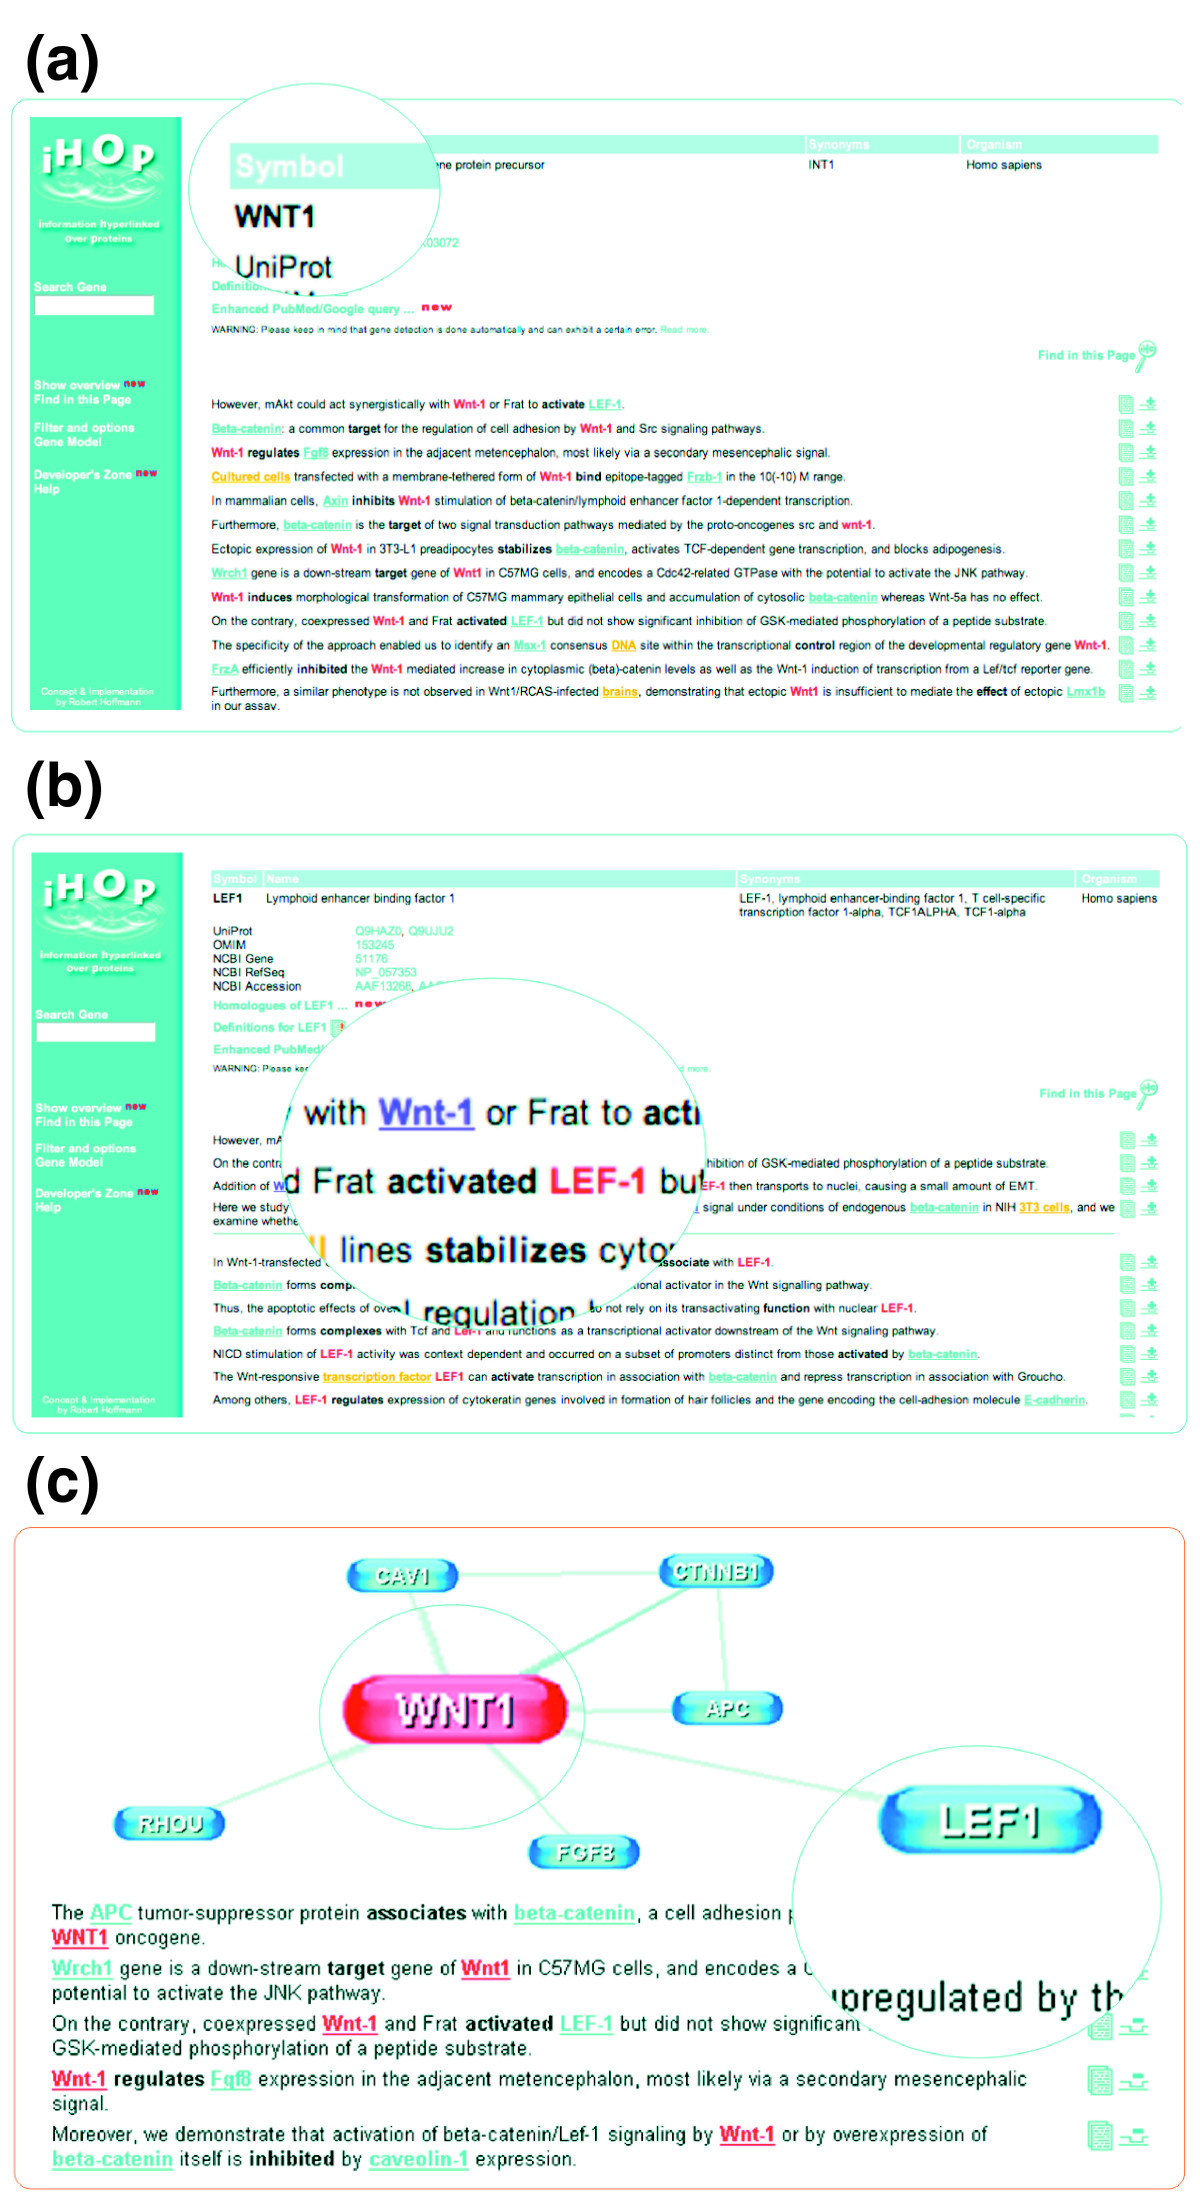 https://static-content.springer.com/image/art%3A10.1186%2Fgb-2005-6-7-224/MediaObjects/13059_2005_Article_968_Fig2_HTML.jpg